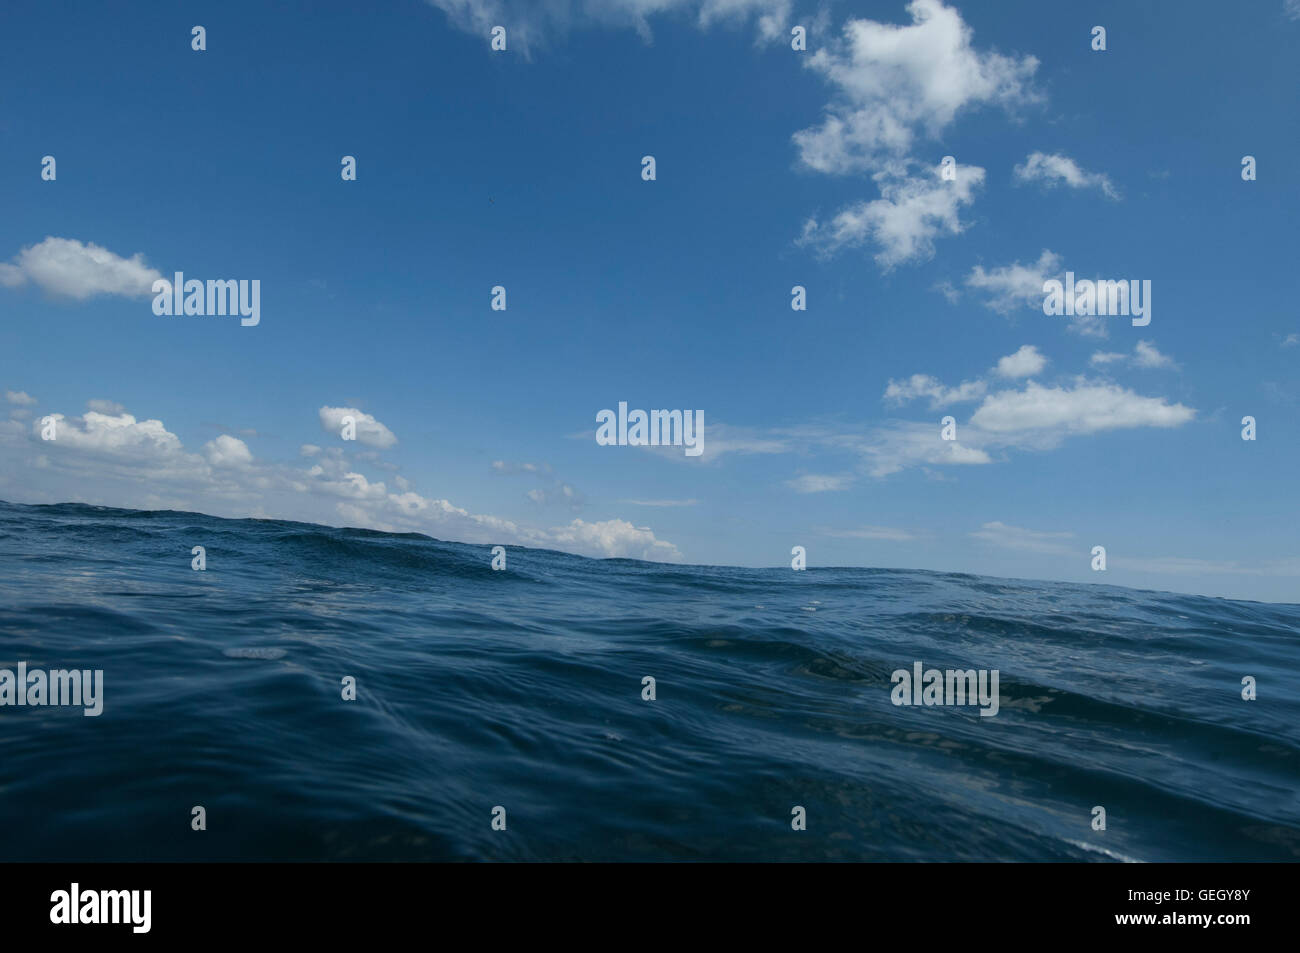 Point of view image for someone floating alone in the ocean. - Stock Image